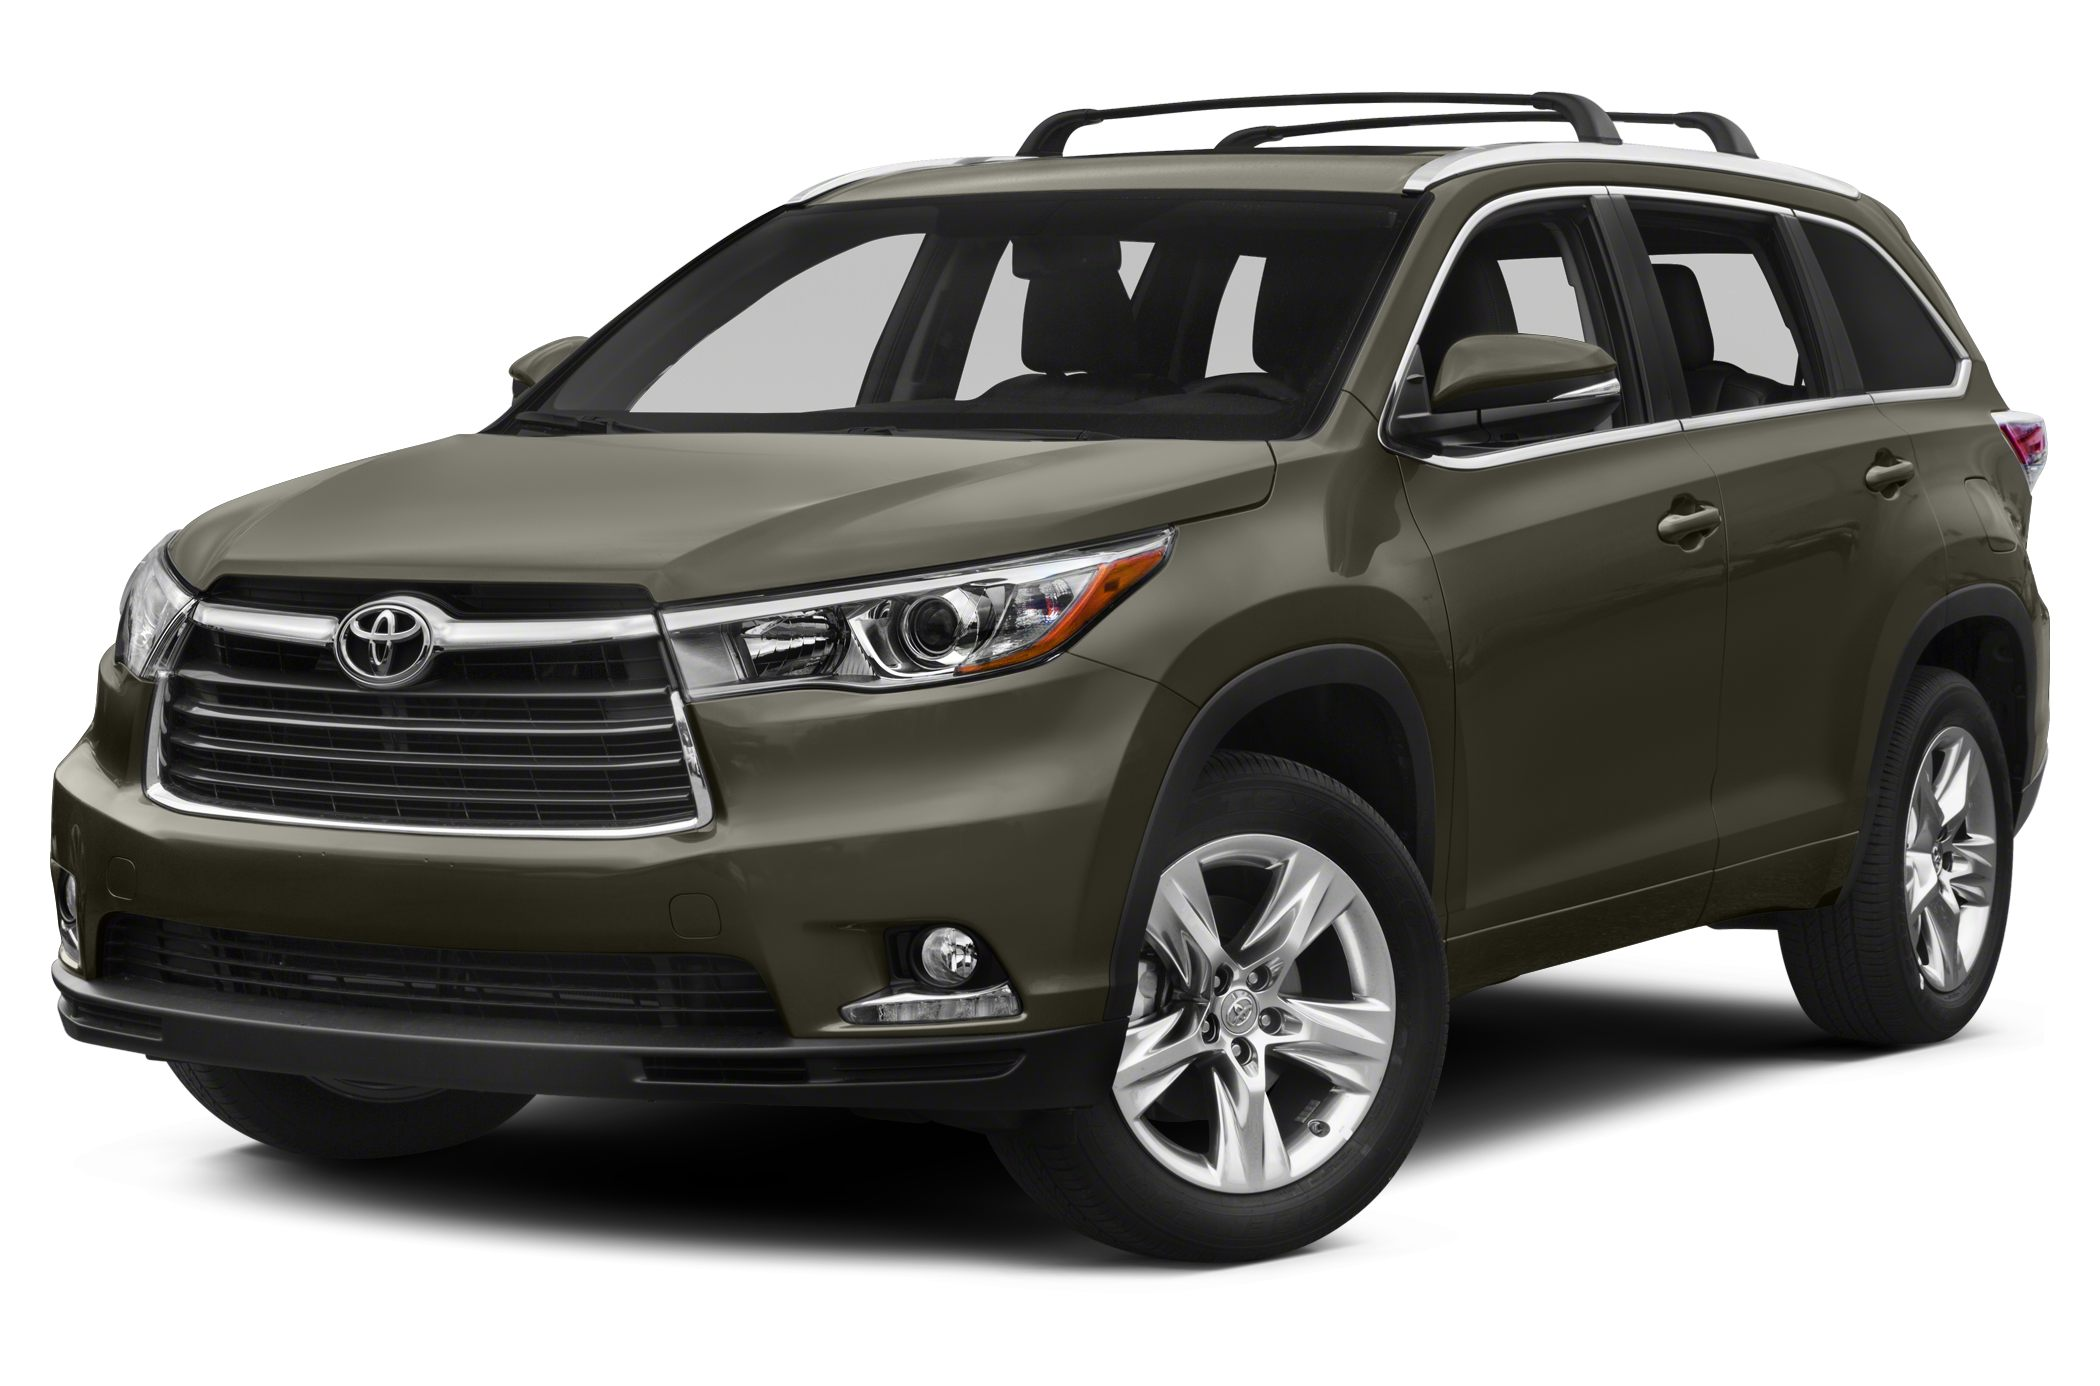 2015 Toyota Highlander XLE SUV for sale in Binghamton for $39,335 with 0 miles